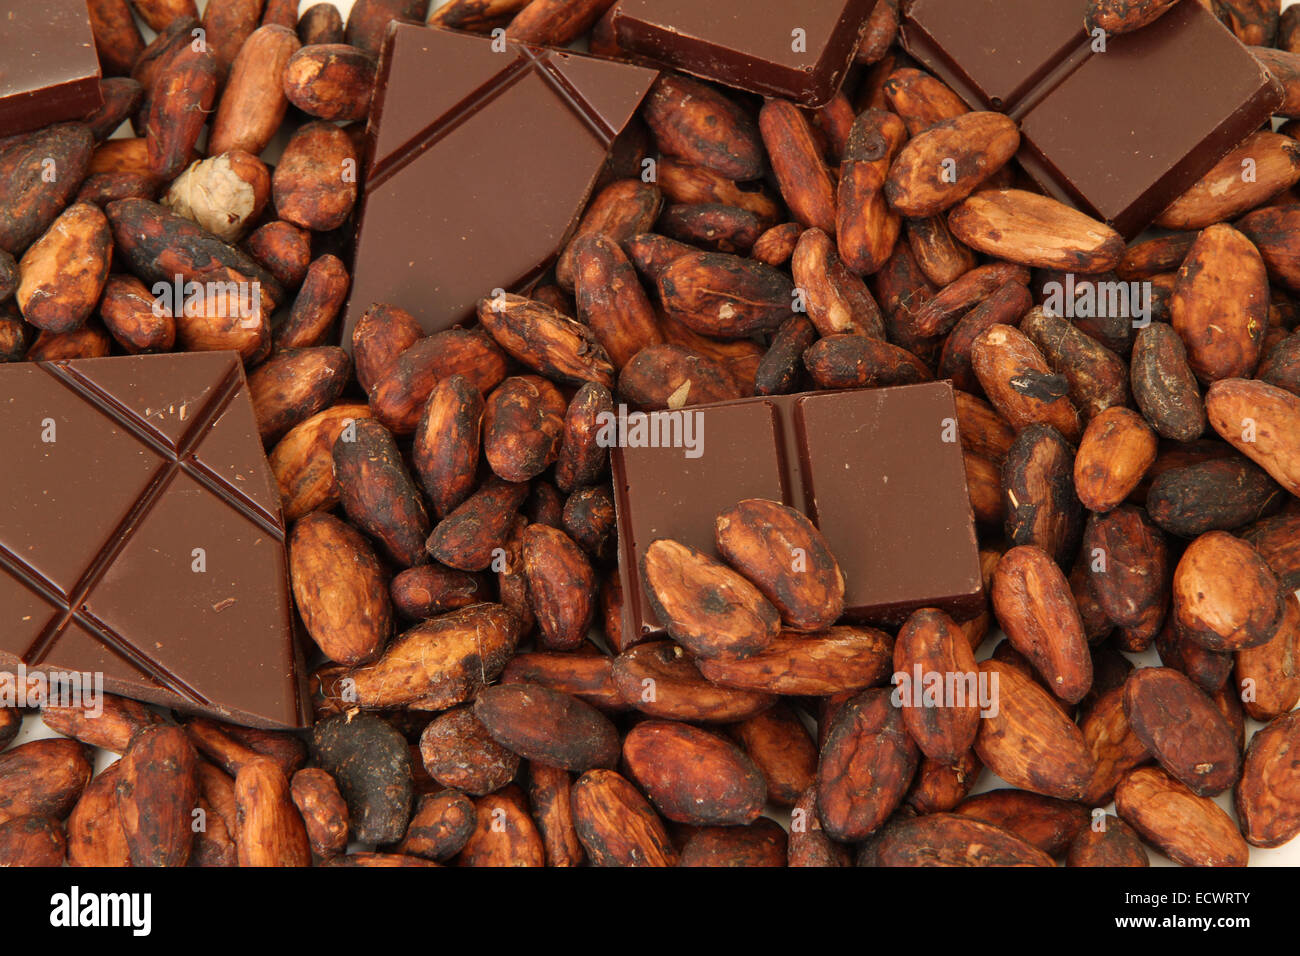 fine origin chocolate with cocoa beans on white surface - Stock Image